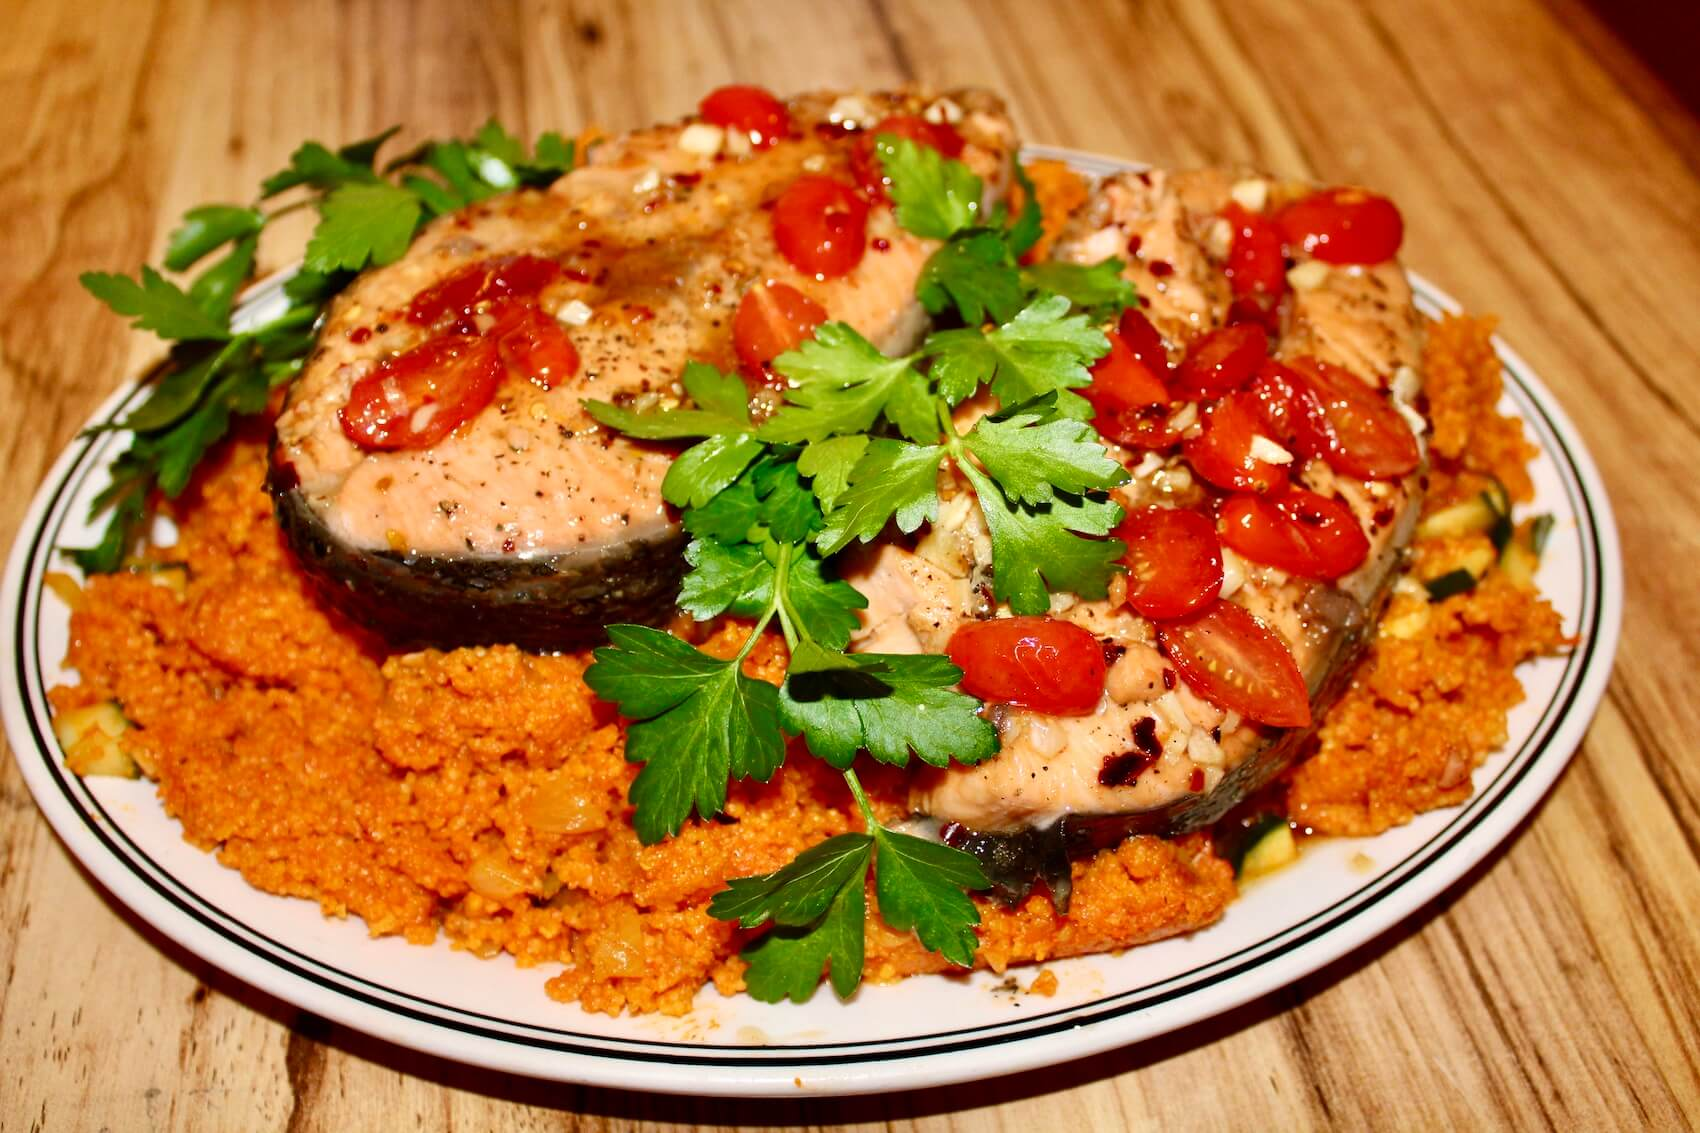 Sweet and Savory Salmon Steaks over Couscous